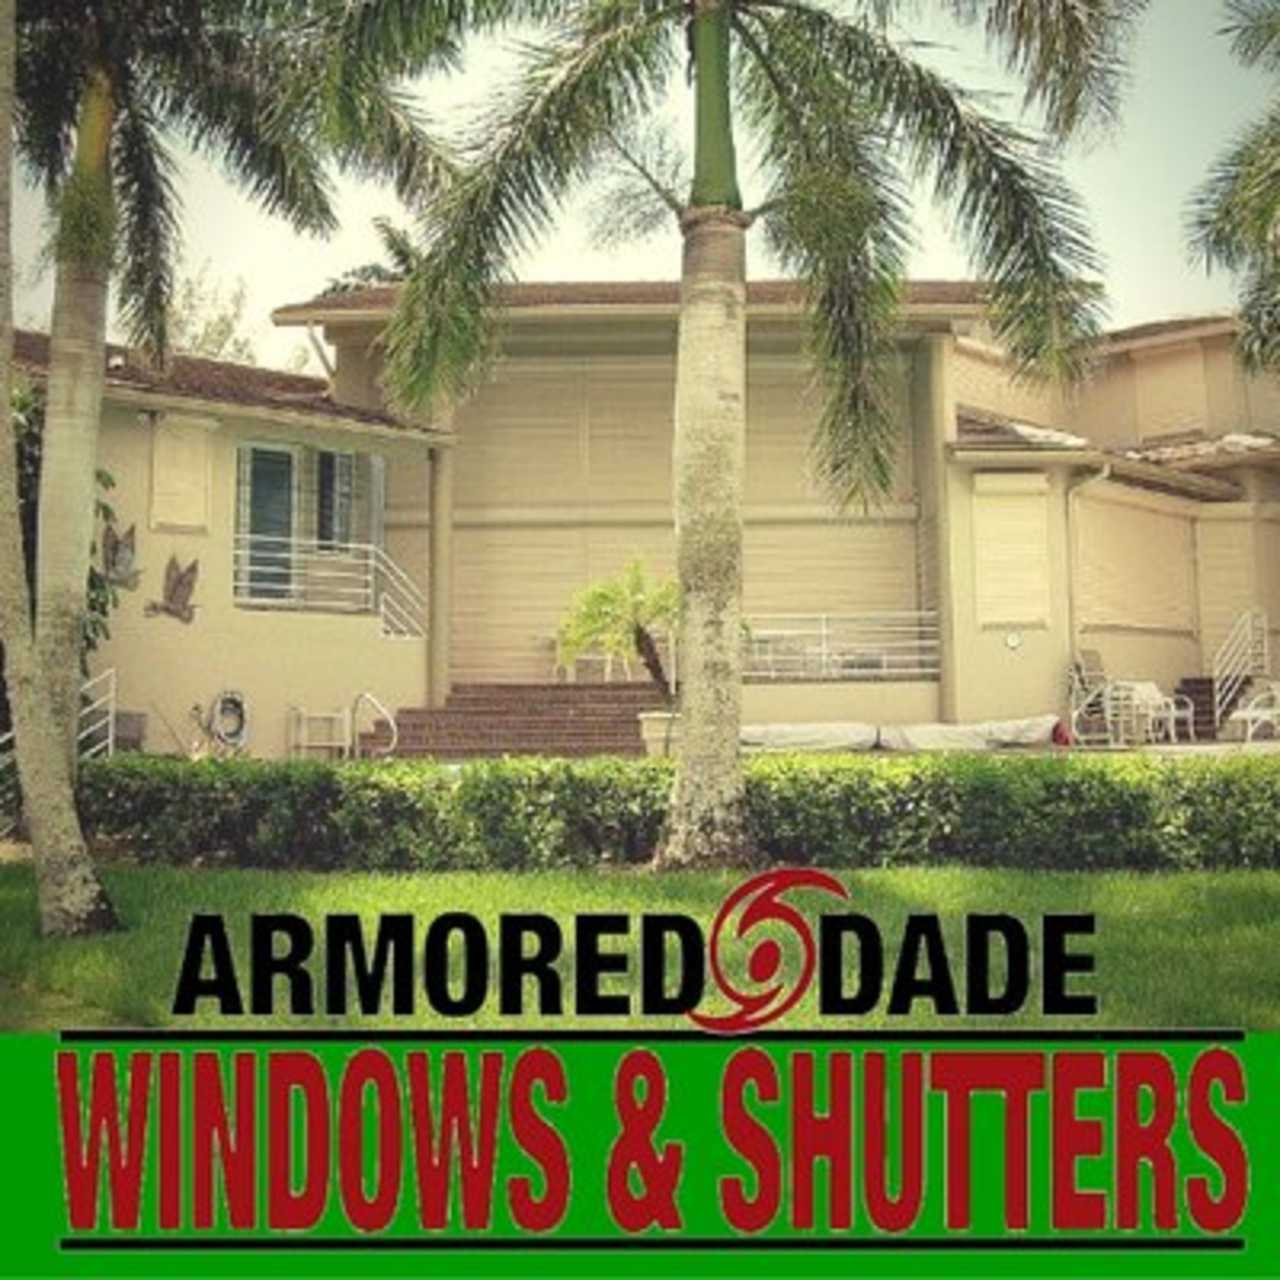 Armored Dade Windows & Shutters - Services - Residential Contractors in Bradenton FL